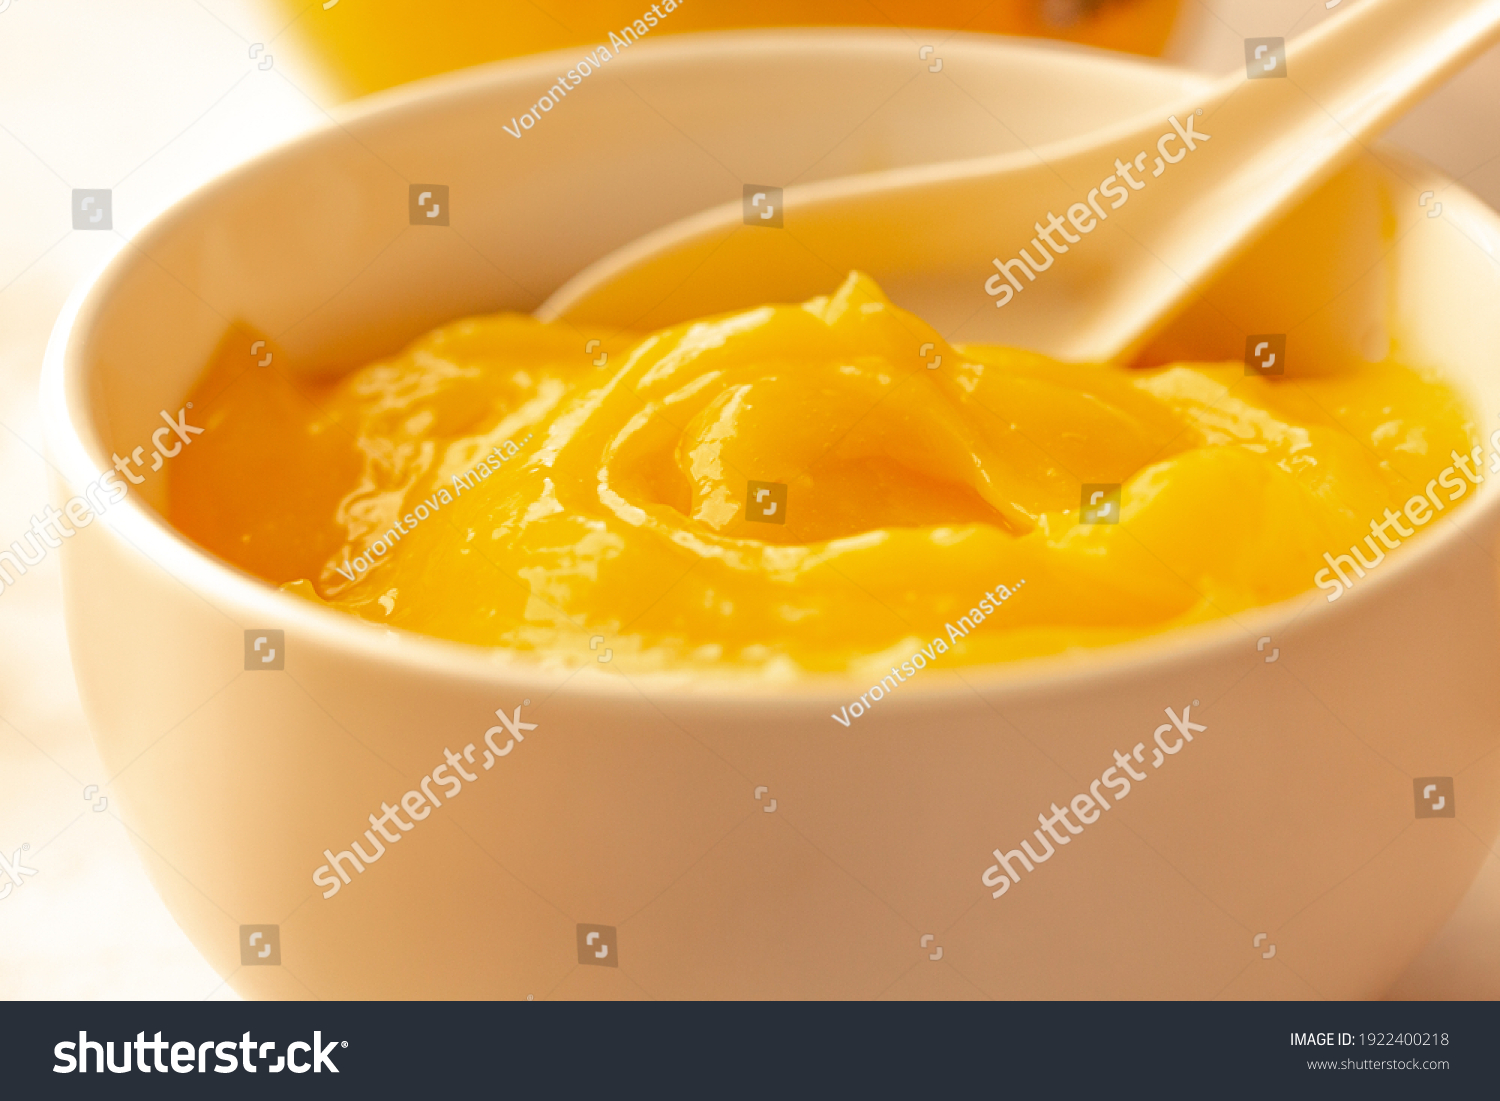 Homemade fresh pudding or tangy lemon curd in a white bowl.Selective focus. #1922400218